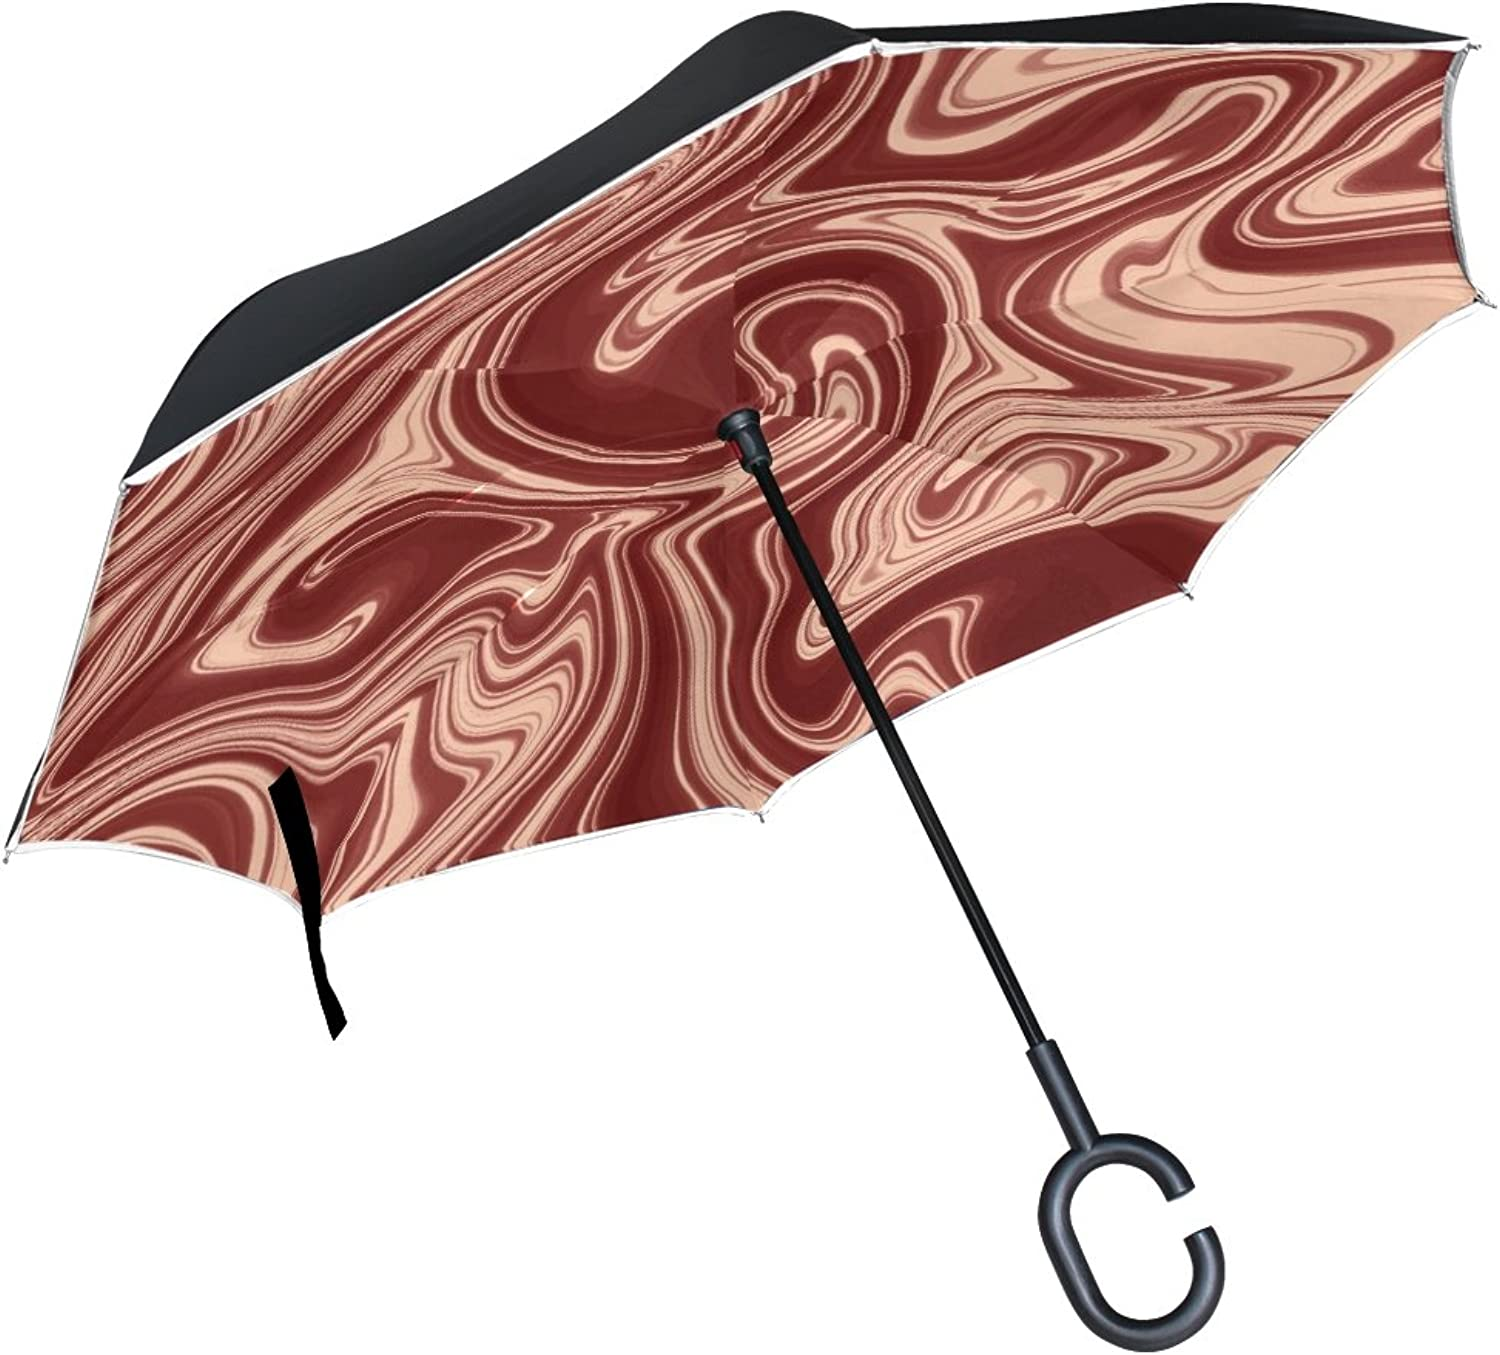 Double Layer Ingreened Fractal Abstraction Texture Umbrellas Reverse Folding Umbrella Windproof Uv Predection Big Straight Umbrella for Car Rain Outdoor with CShaped Handle